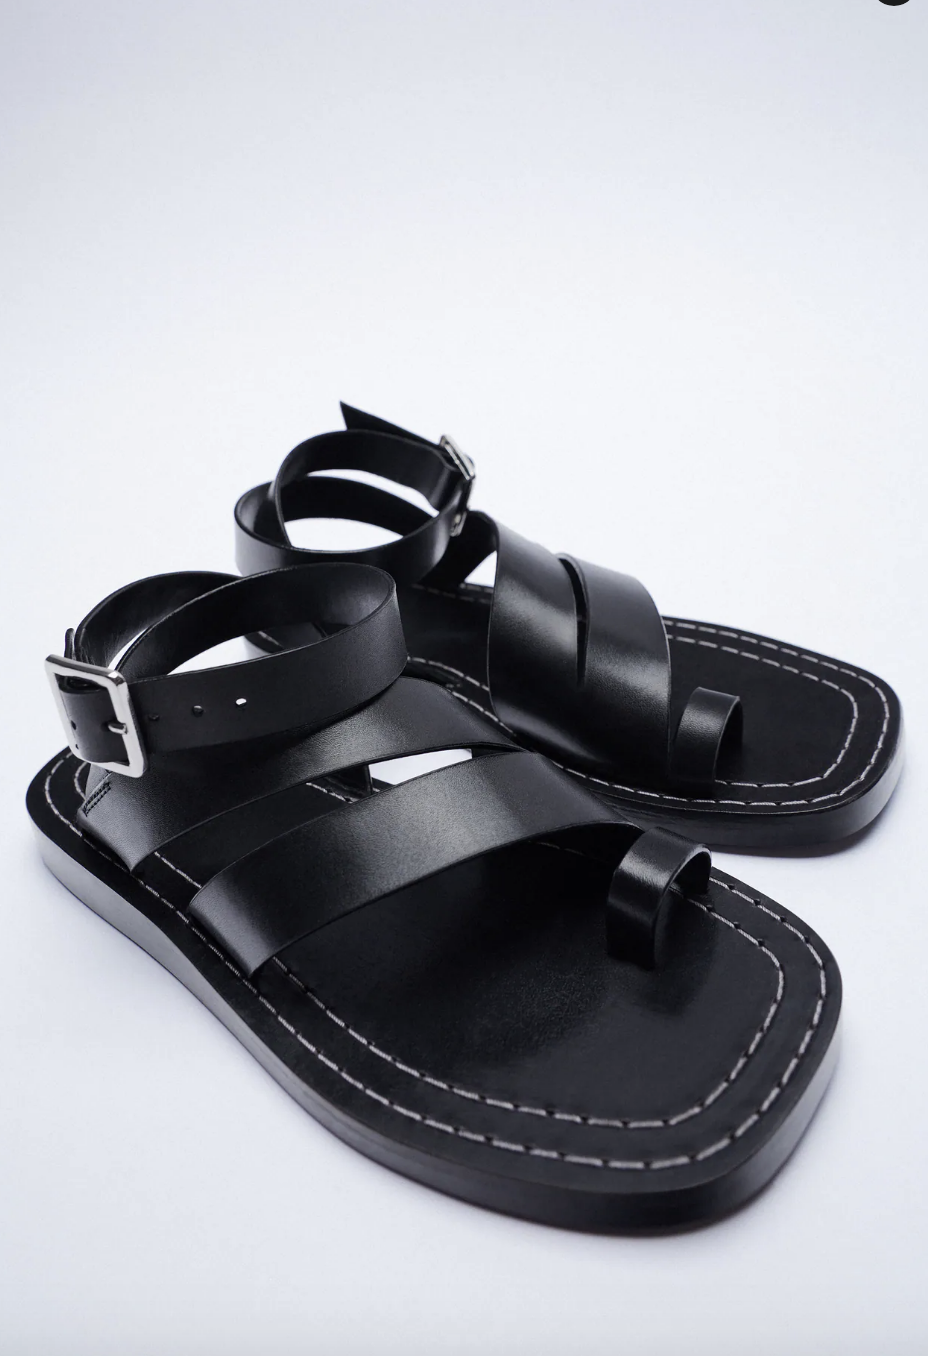 6 Sandal Trends to Try This Summer for Under $100